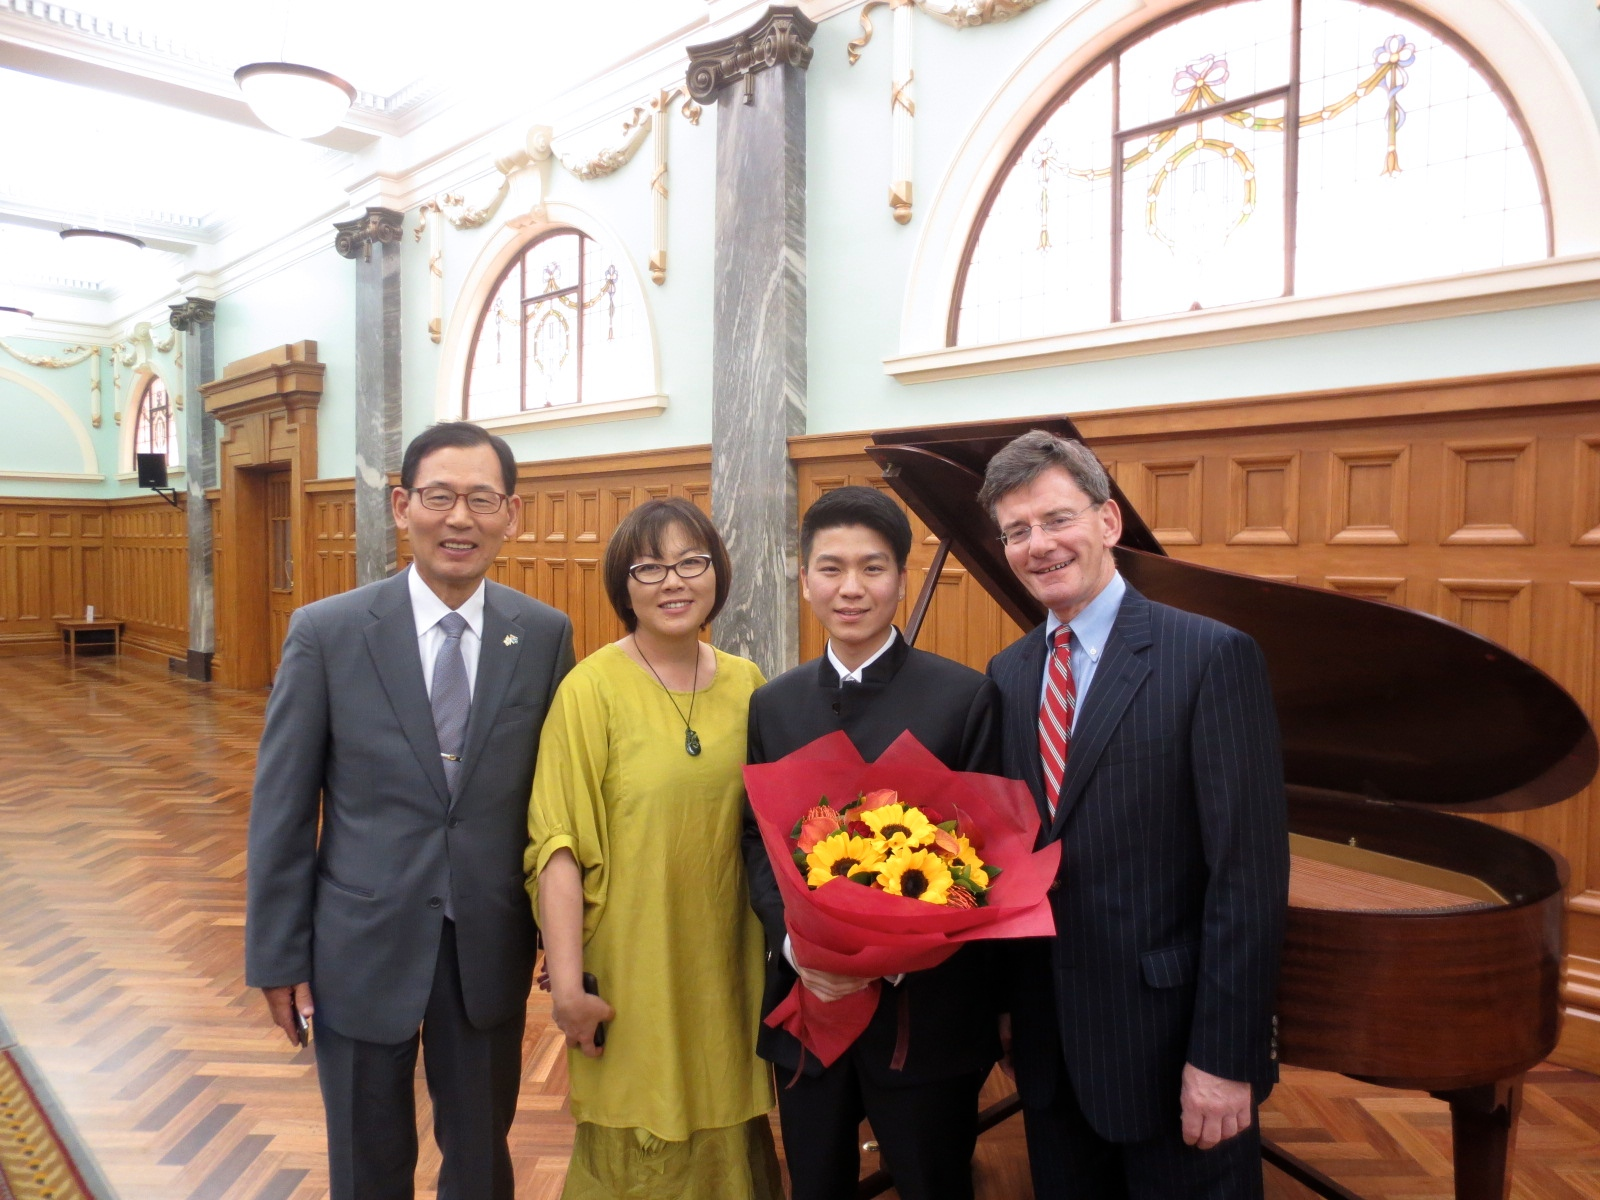 Grand Hall, New Zealand Parliament.1. Ambassador of Republic of Korea, His Excellency, Mr. Yong-Kyu Park.2.National MP, Ms. Melissa Lee.3.   Minister of Arts, Culture and Heritage, Hon. Christopher Finlayson.